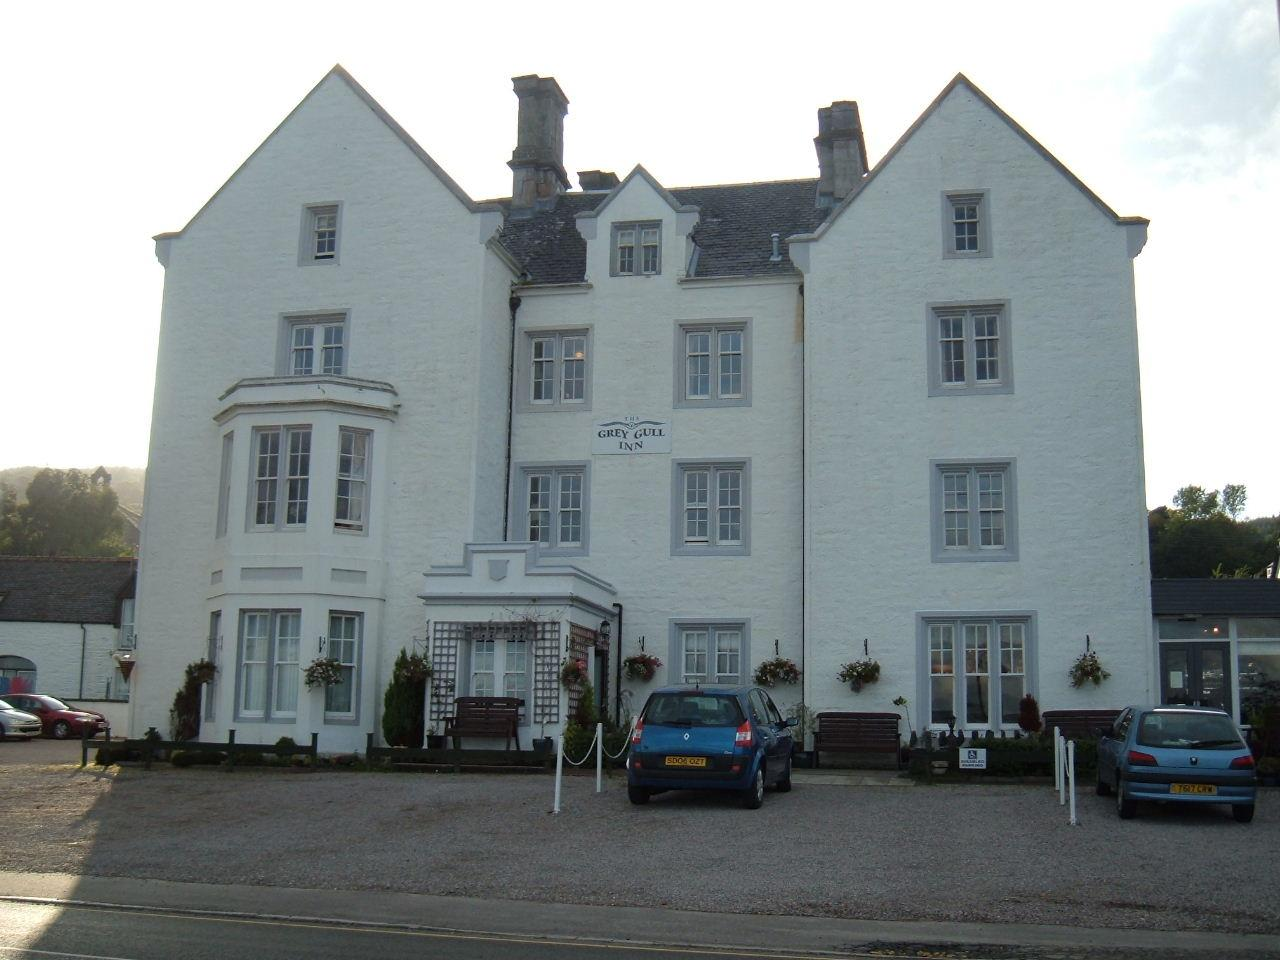 Grey Gull Inn